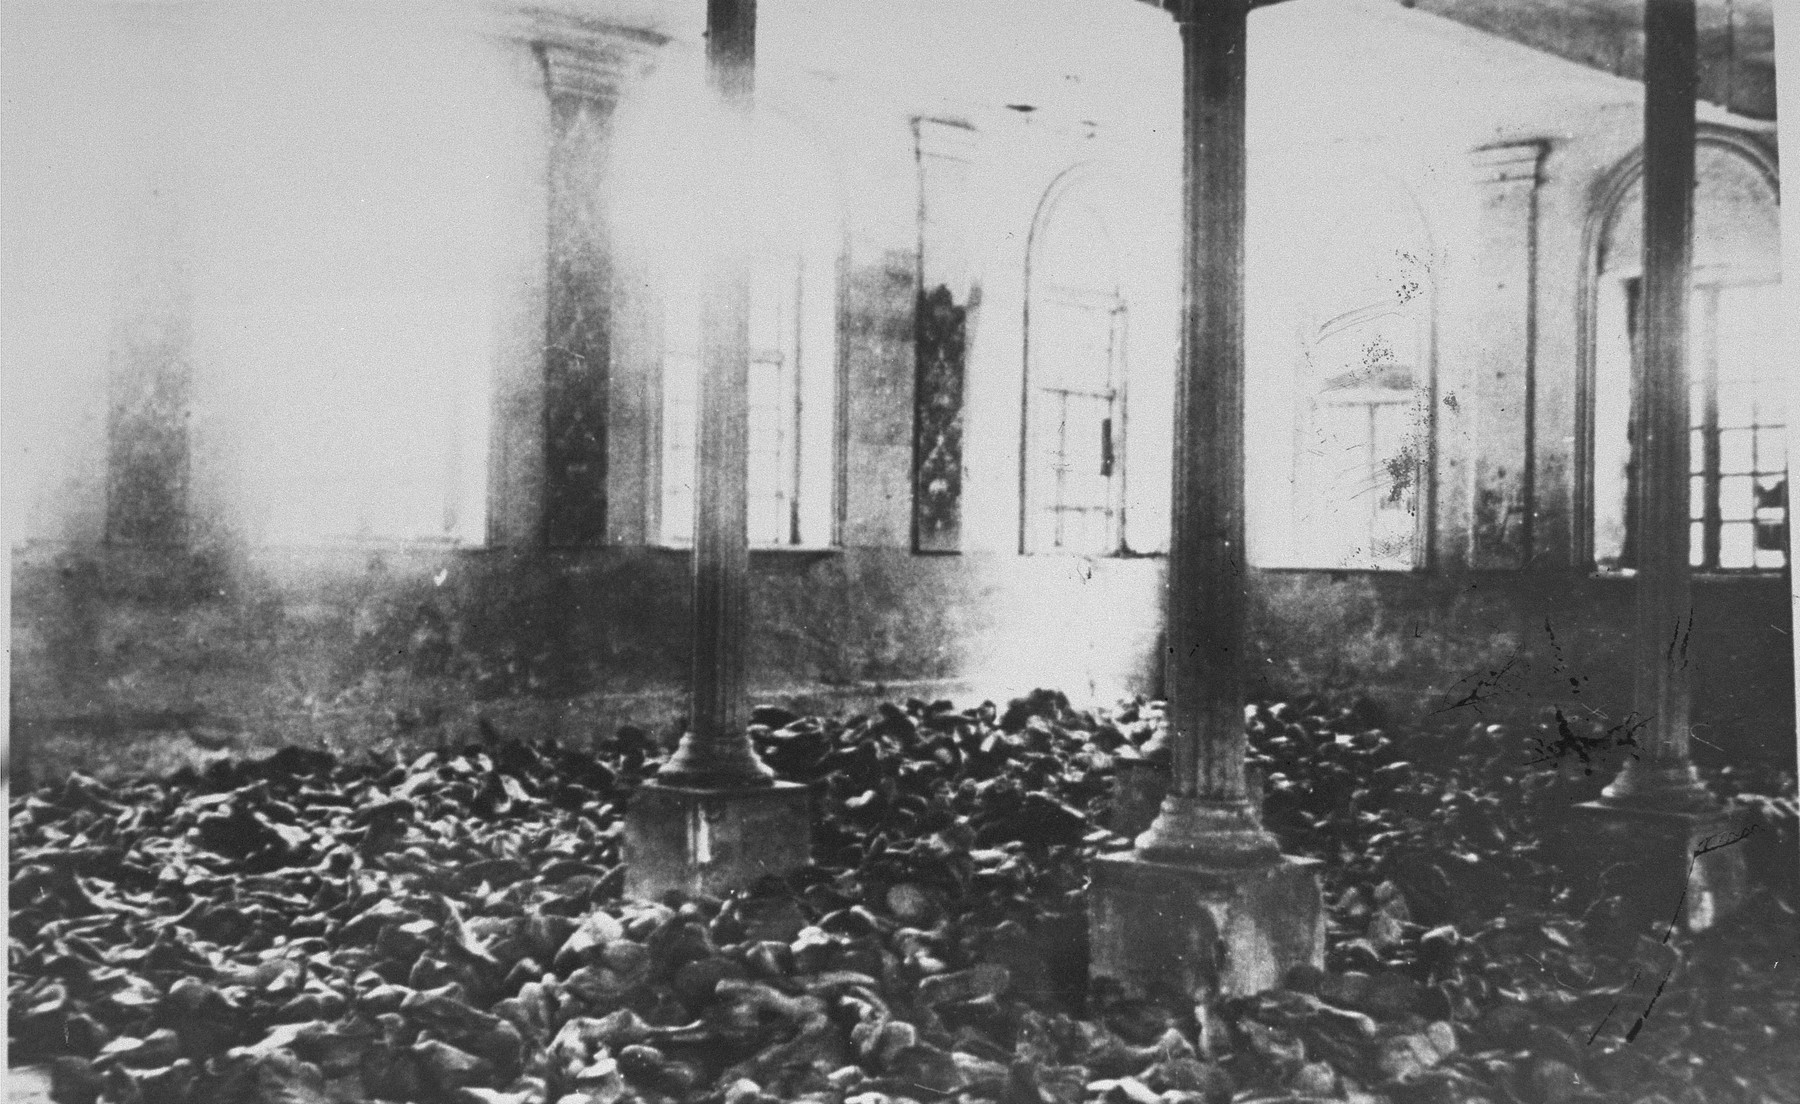 The belongings of Jews gassed at Chelmno cover the floor of a synagogue in nearby Kolo, where prisoners were kept before they were taken by truck to the killing center.